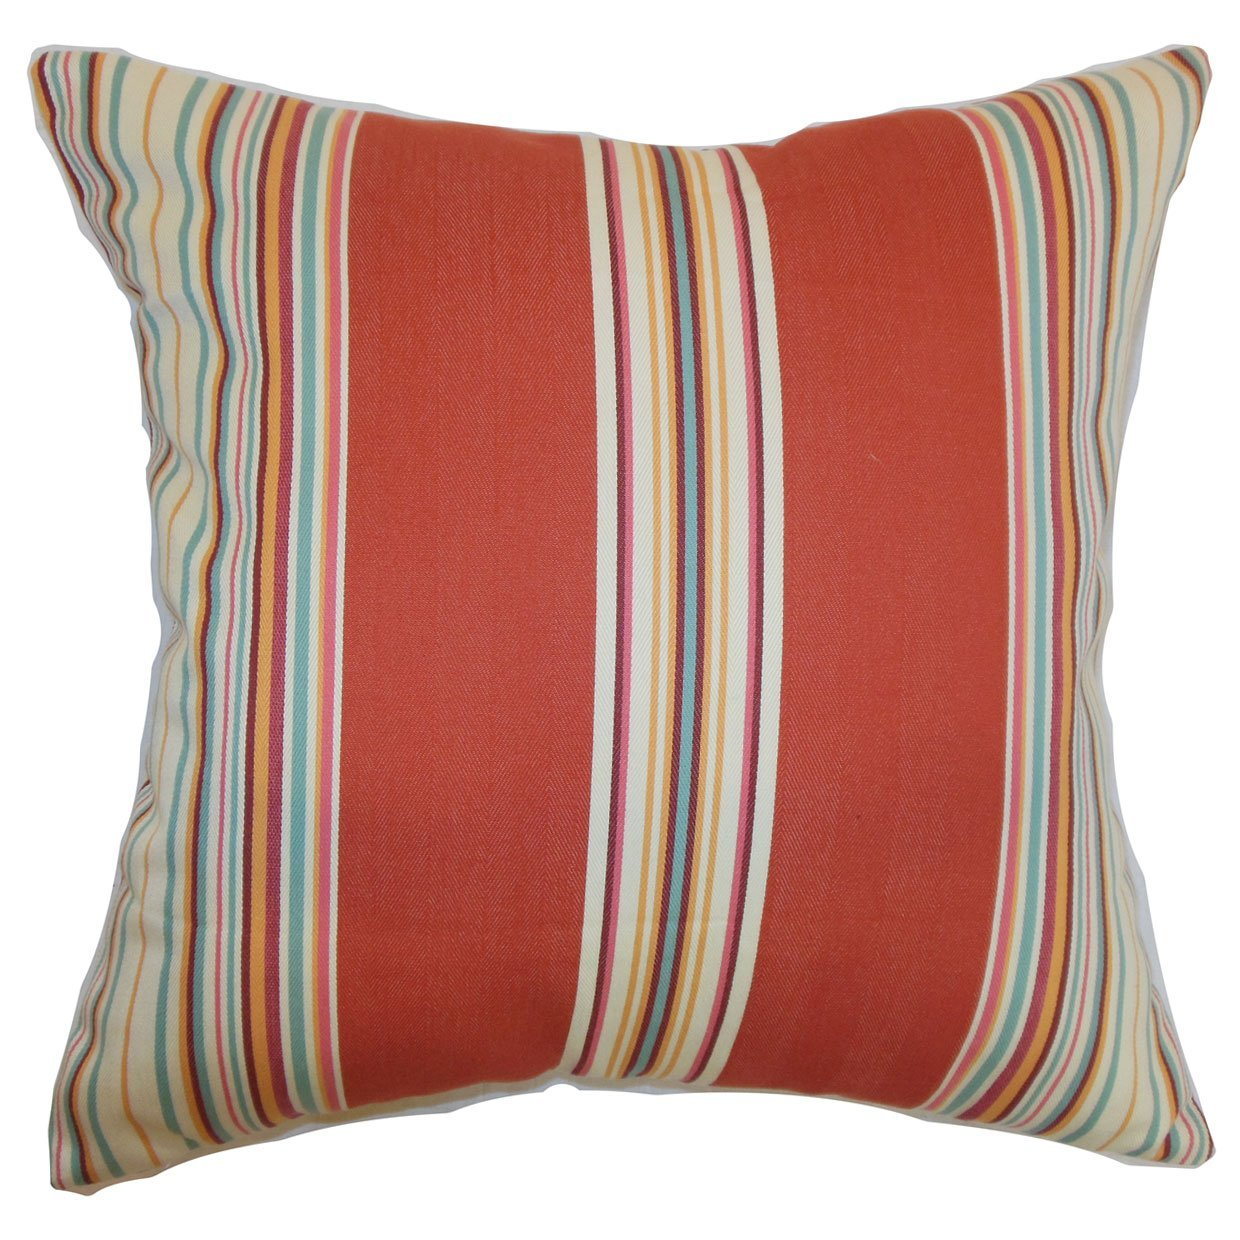 Red Cotton Striped Contemporary Throw Pillow Cover